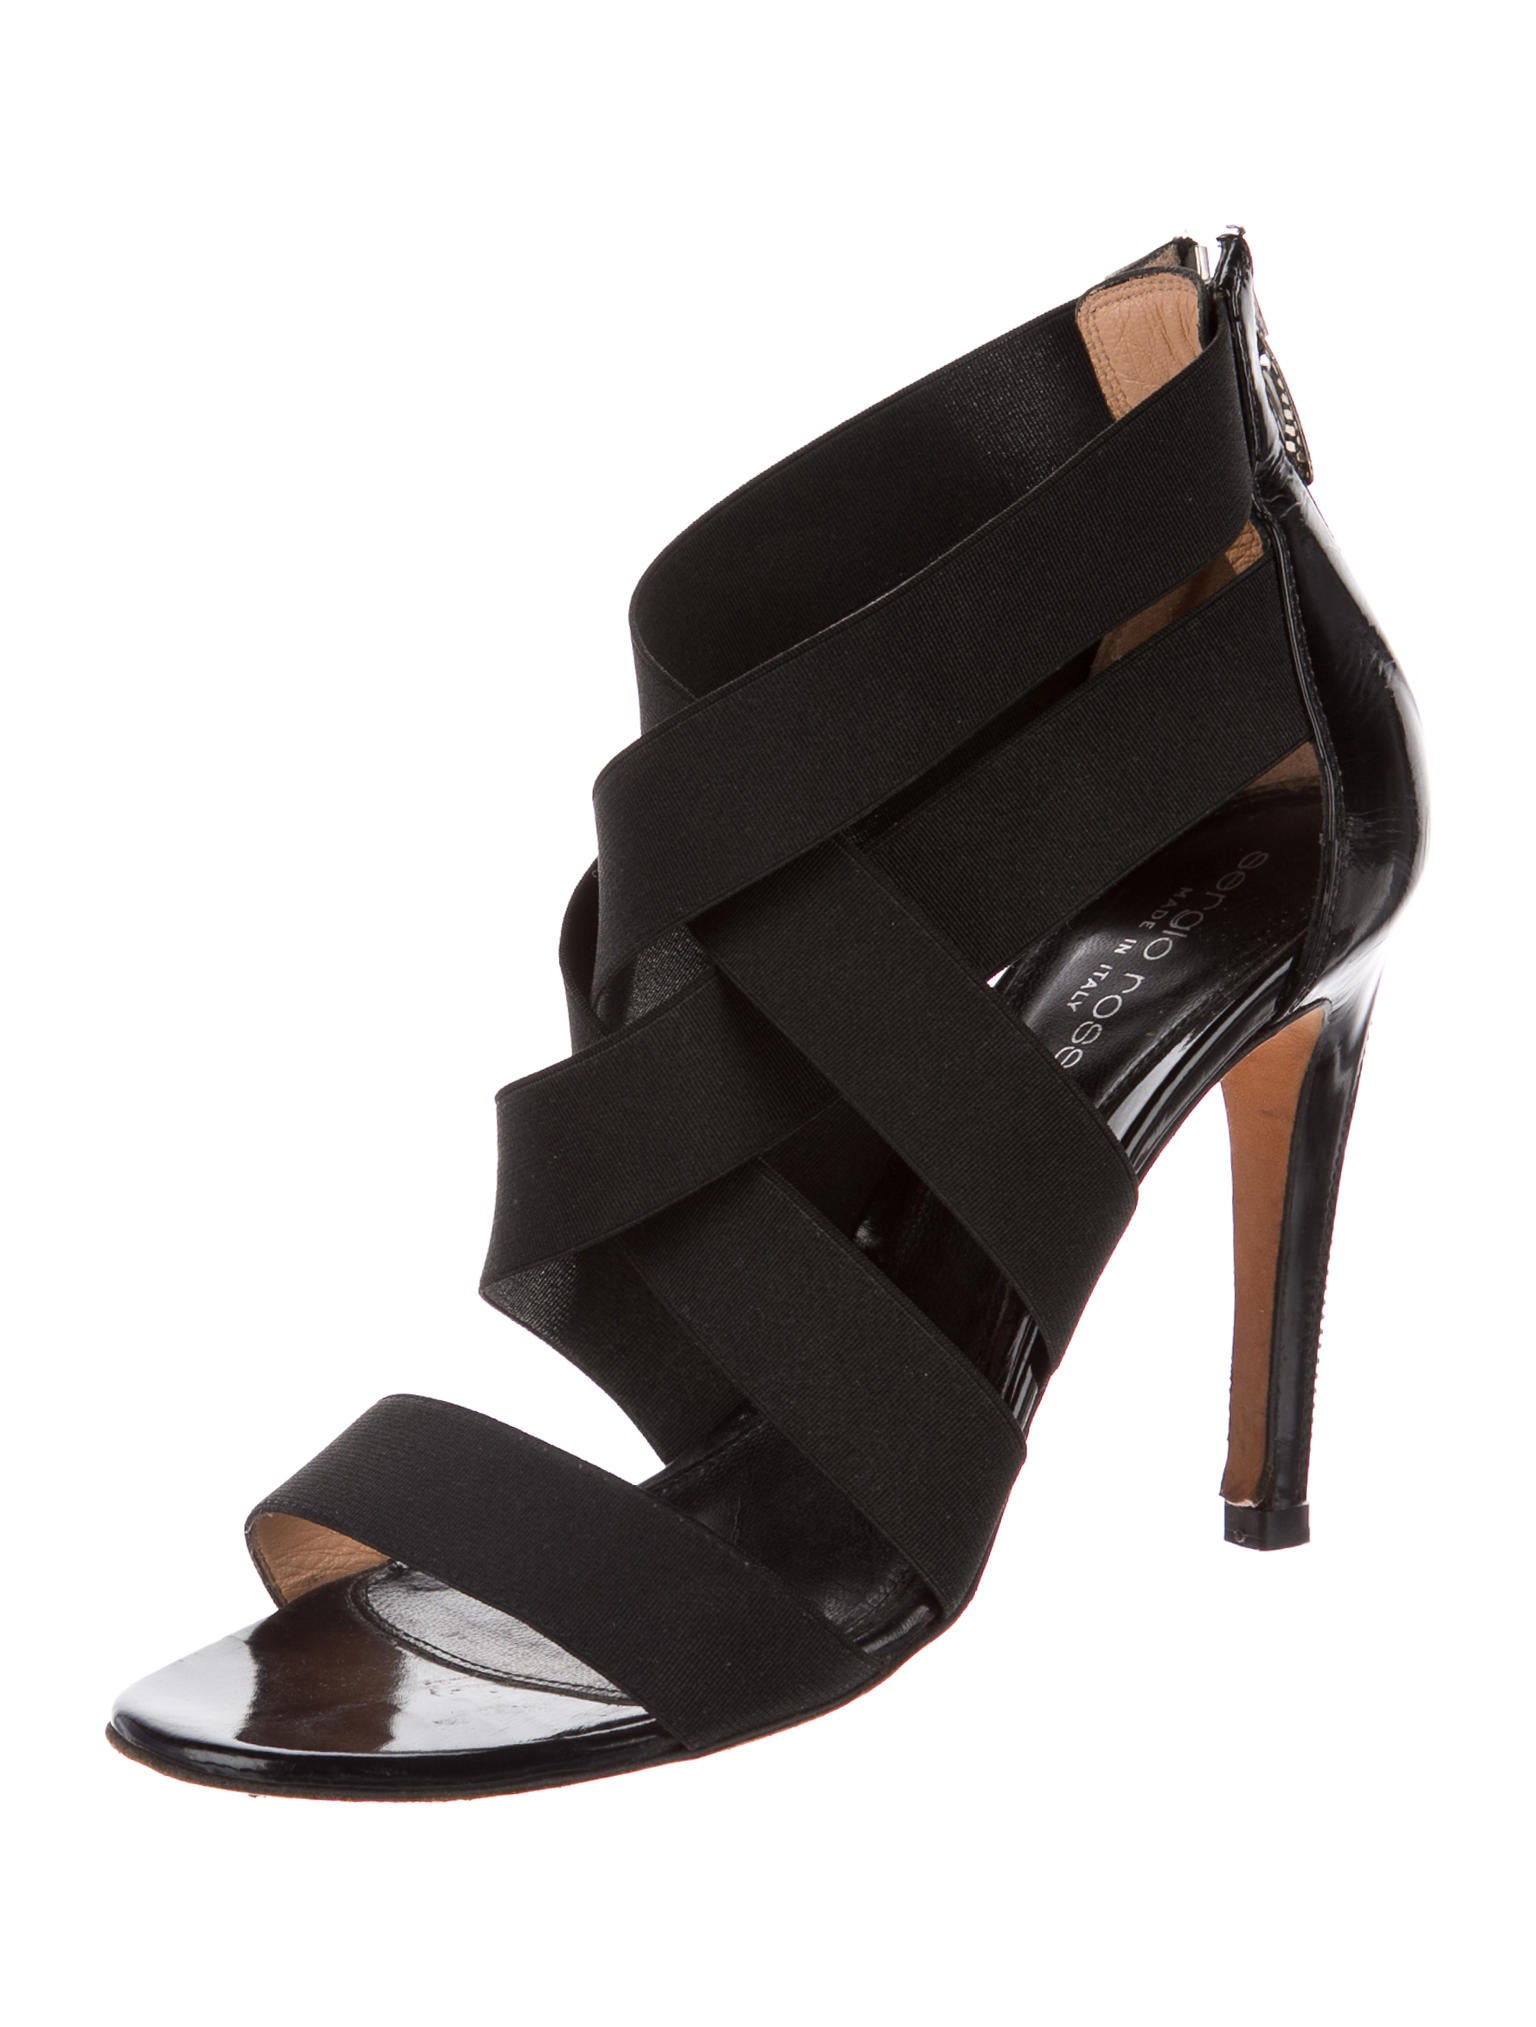 Sergio Rossi Zipper-Accented Crossover Pumps buy cheap under $60 explore for sale free shipping latest collections discount genuine wQvhC